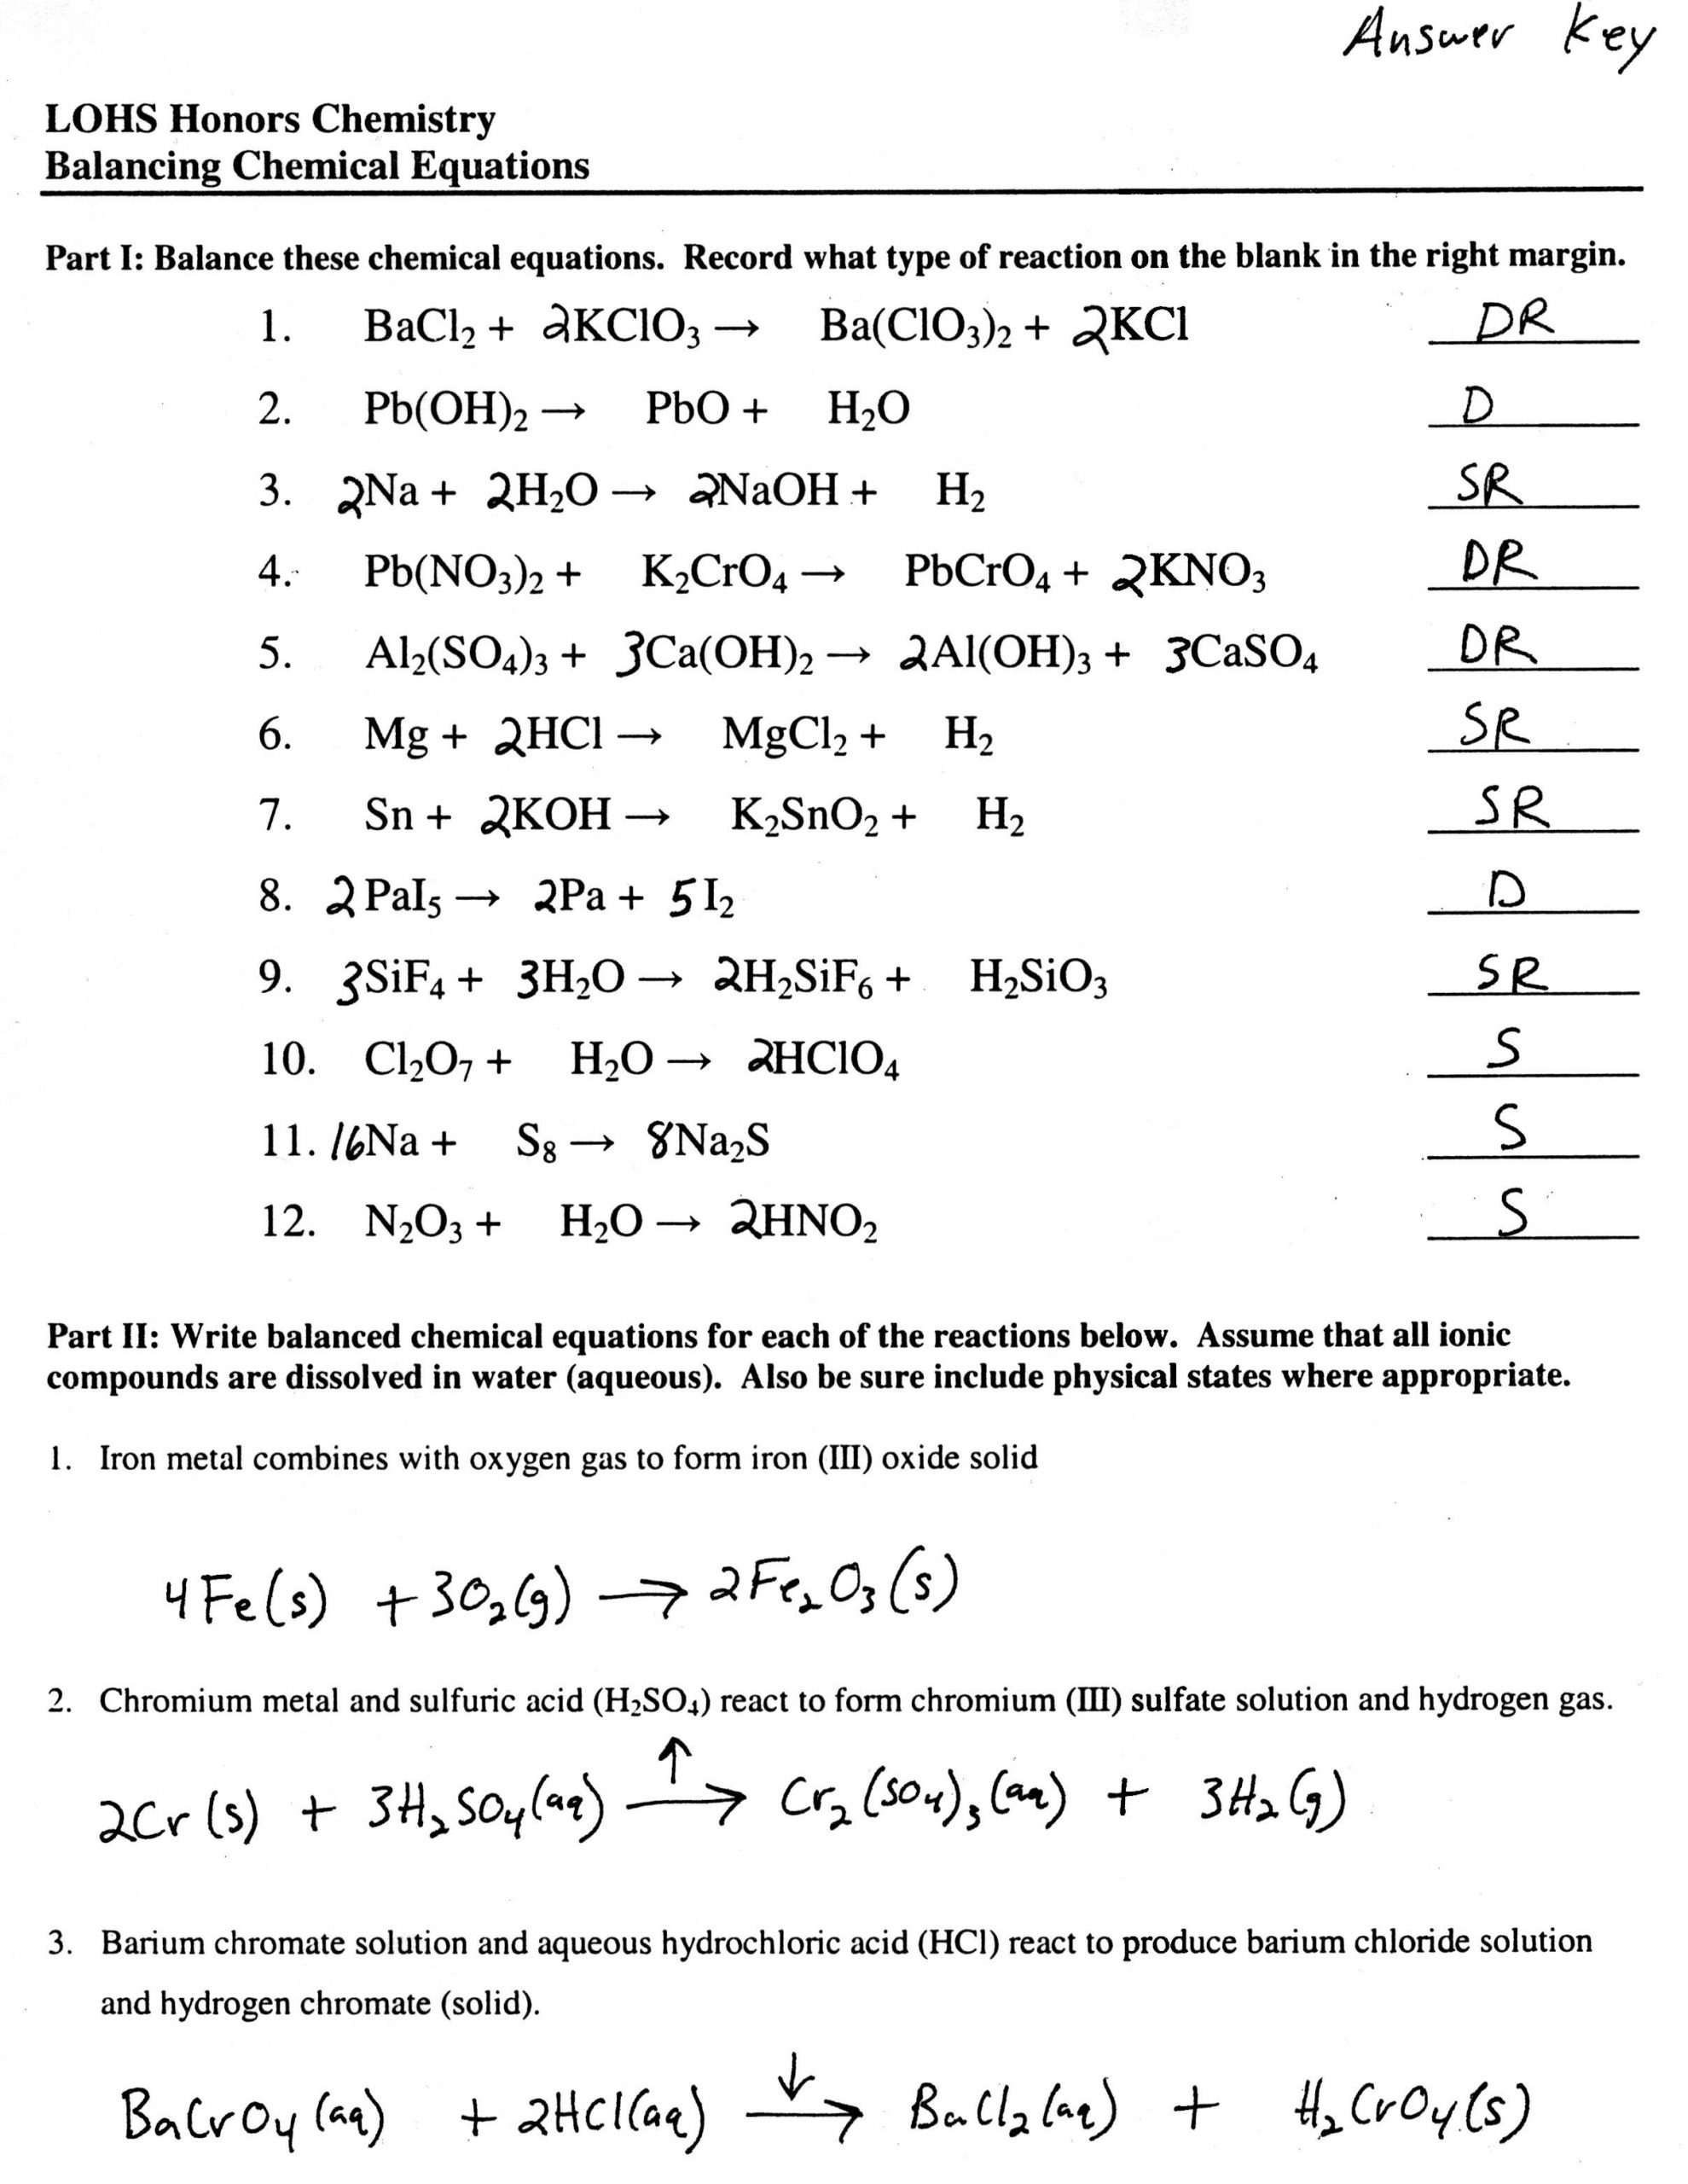 Practice Writing Chemical Equations Worksheet Balancing Equations Worksheet In 2020